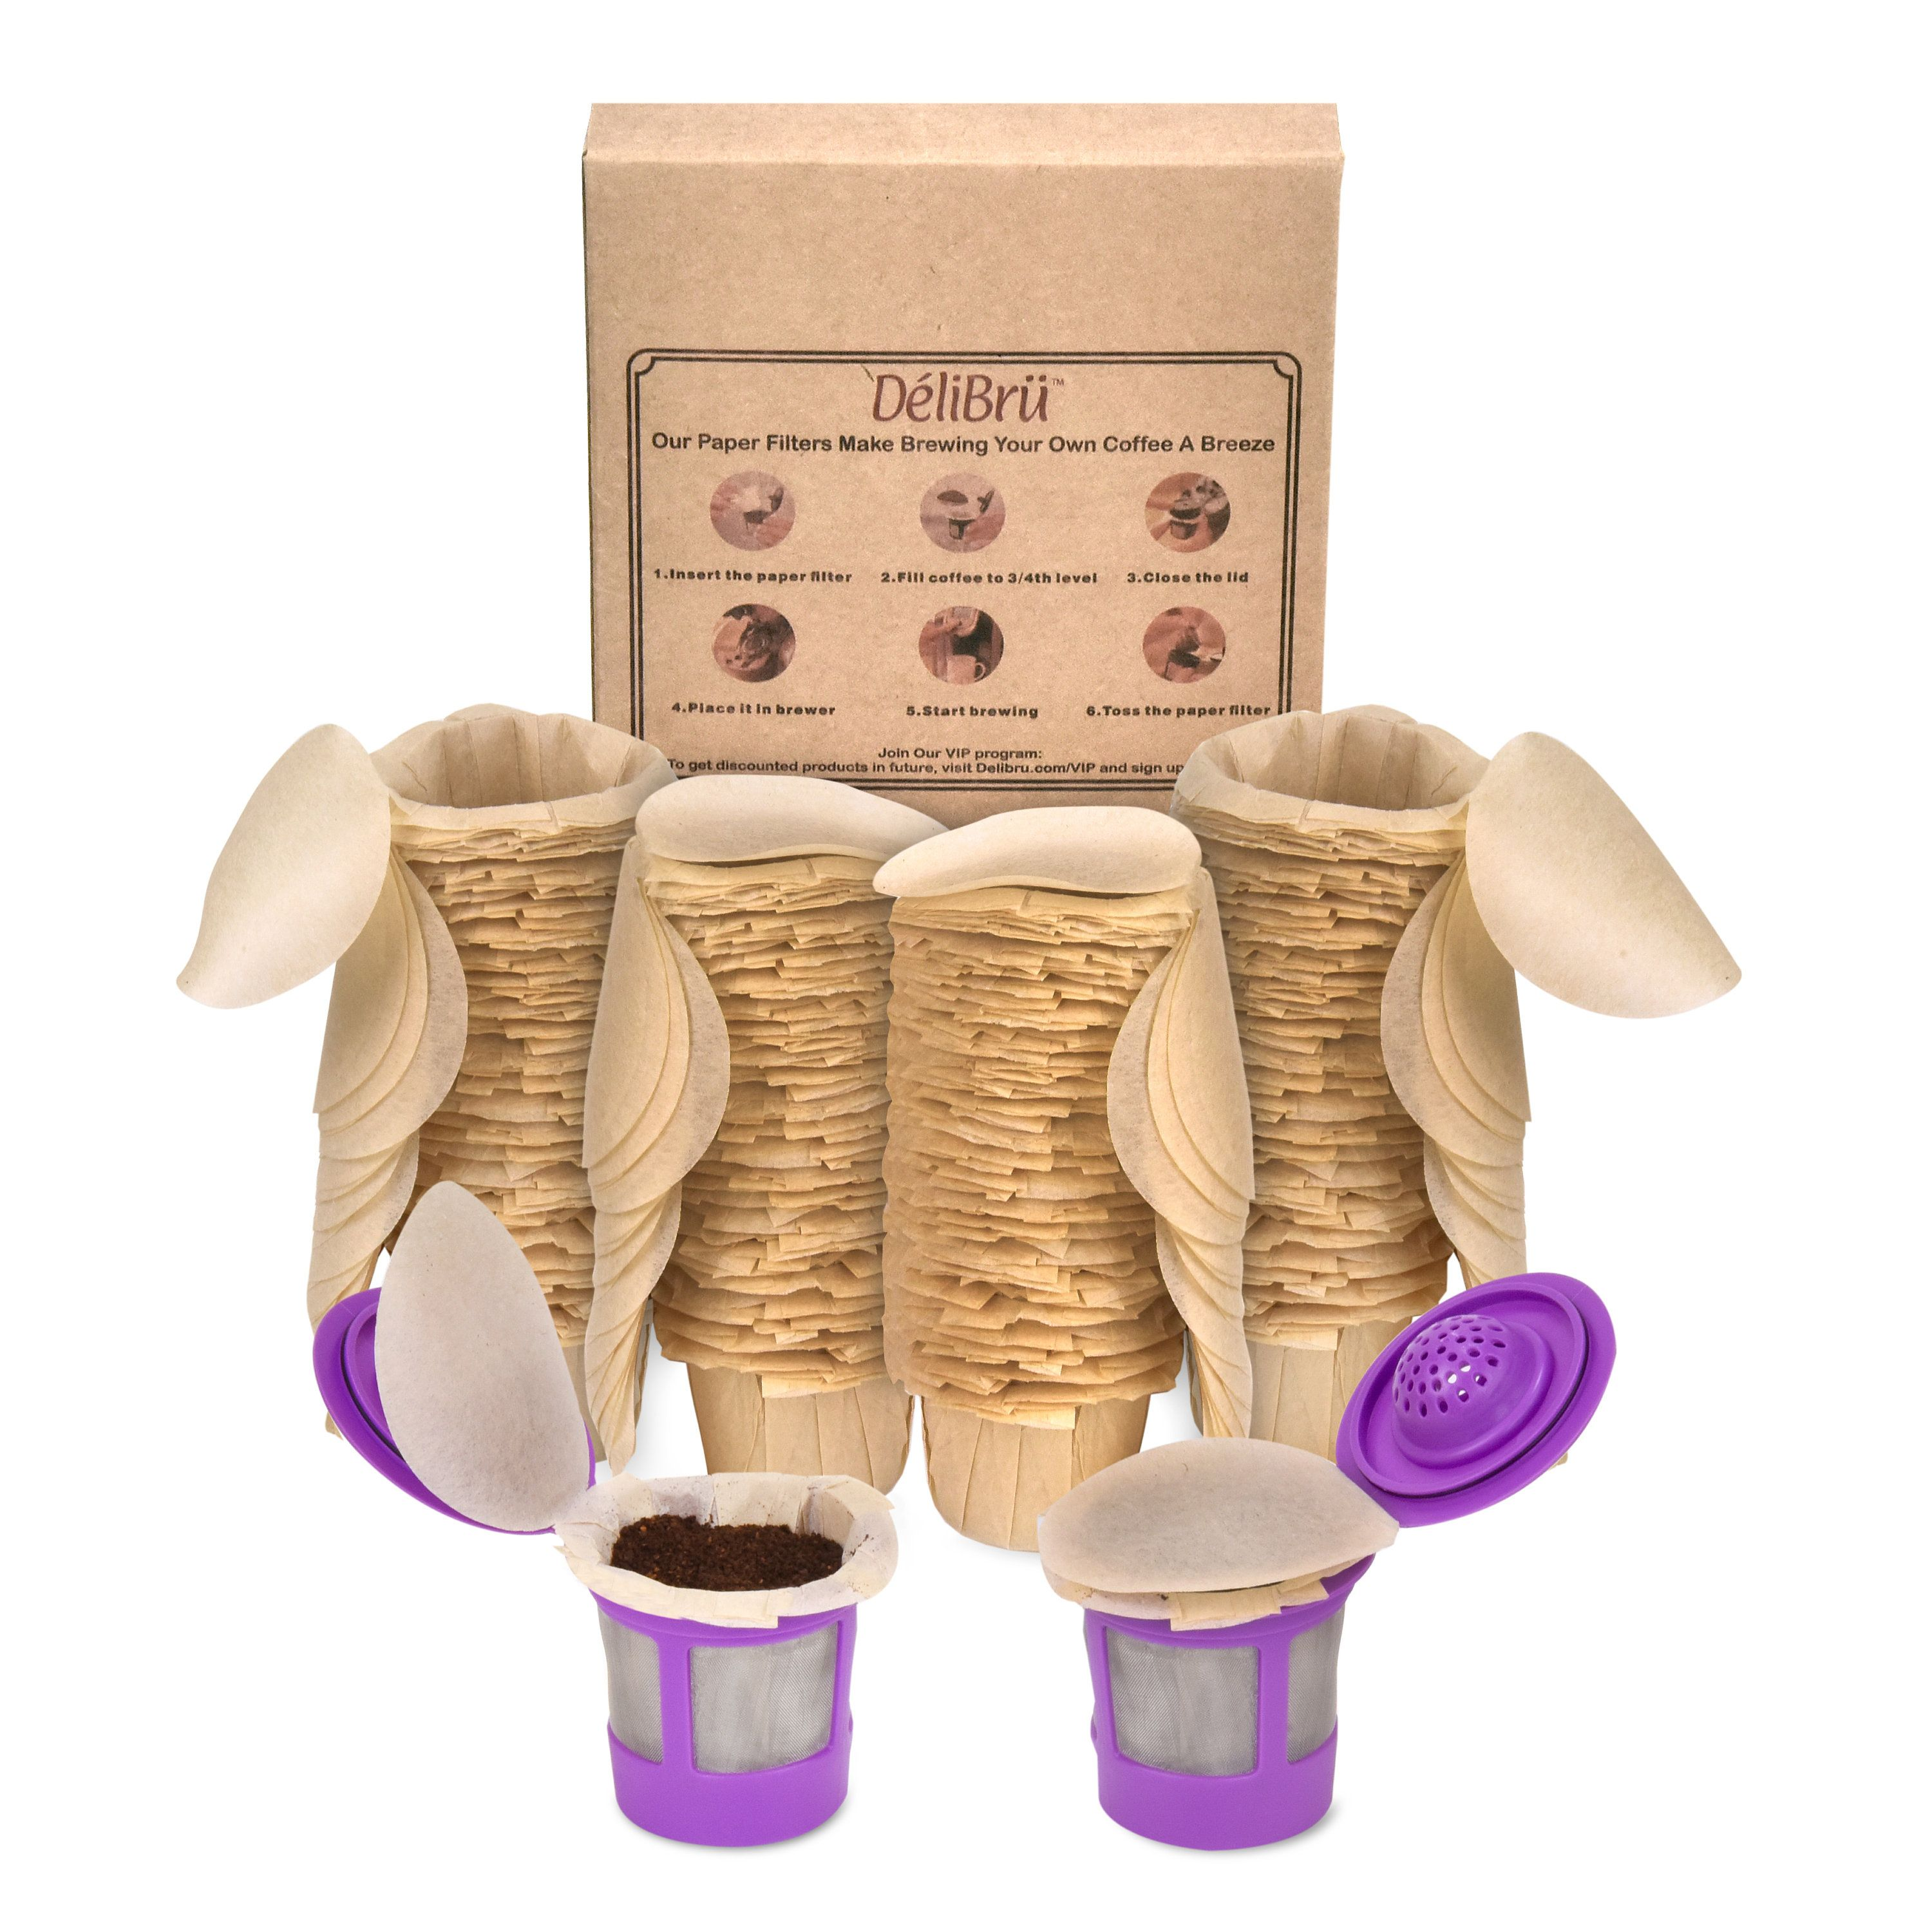 Delilbru unbleached paper filters for reusable k cups